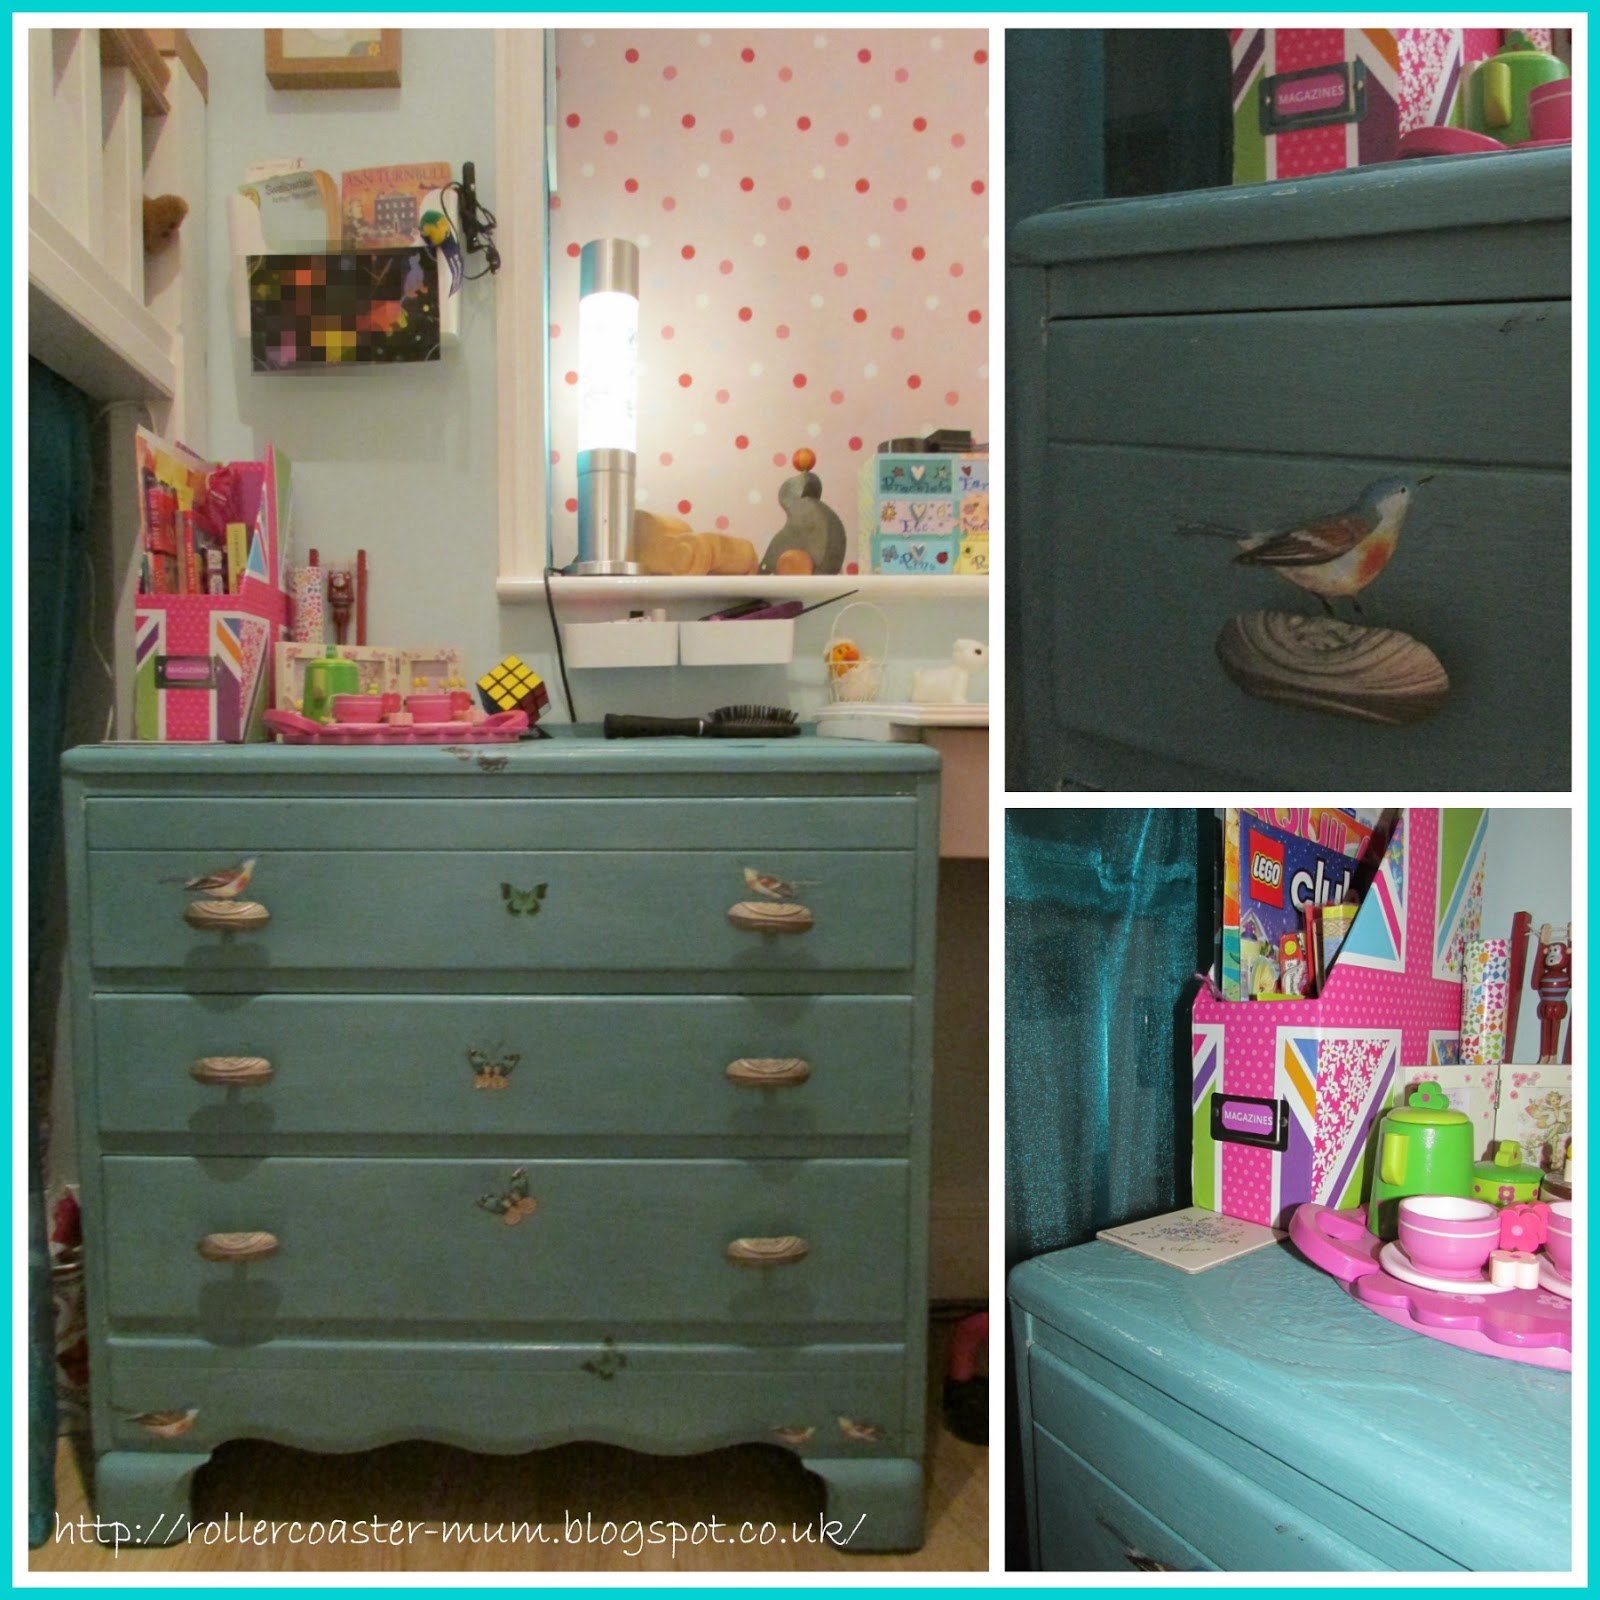 Lebus chest of drawers in turquoise shabby chic style